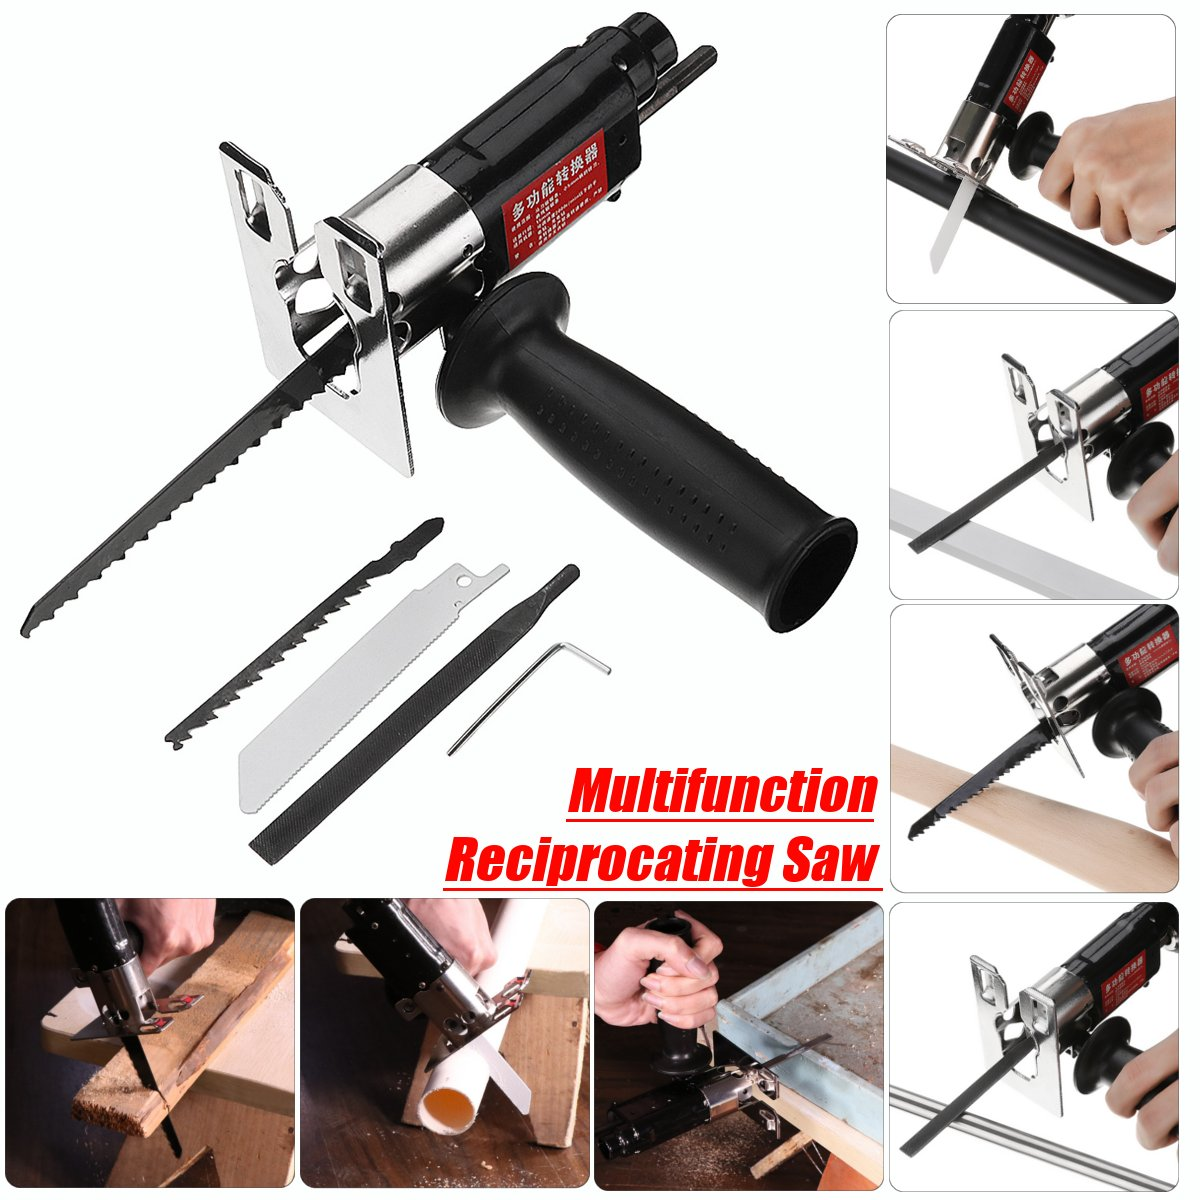 Multifunction Reciprocating Saw Attachment Change Electric Drill Into Reciprocating Saw Jig Saw Metal File For Wood Metal Cuting